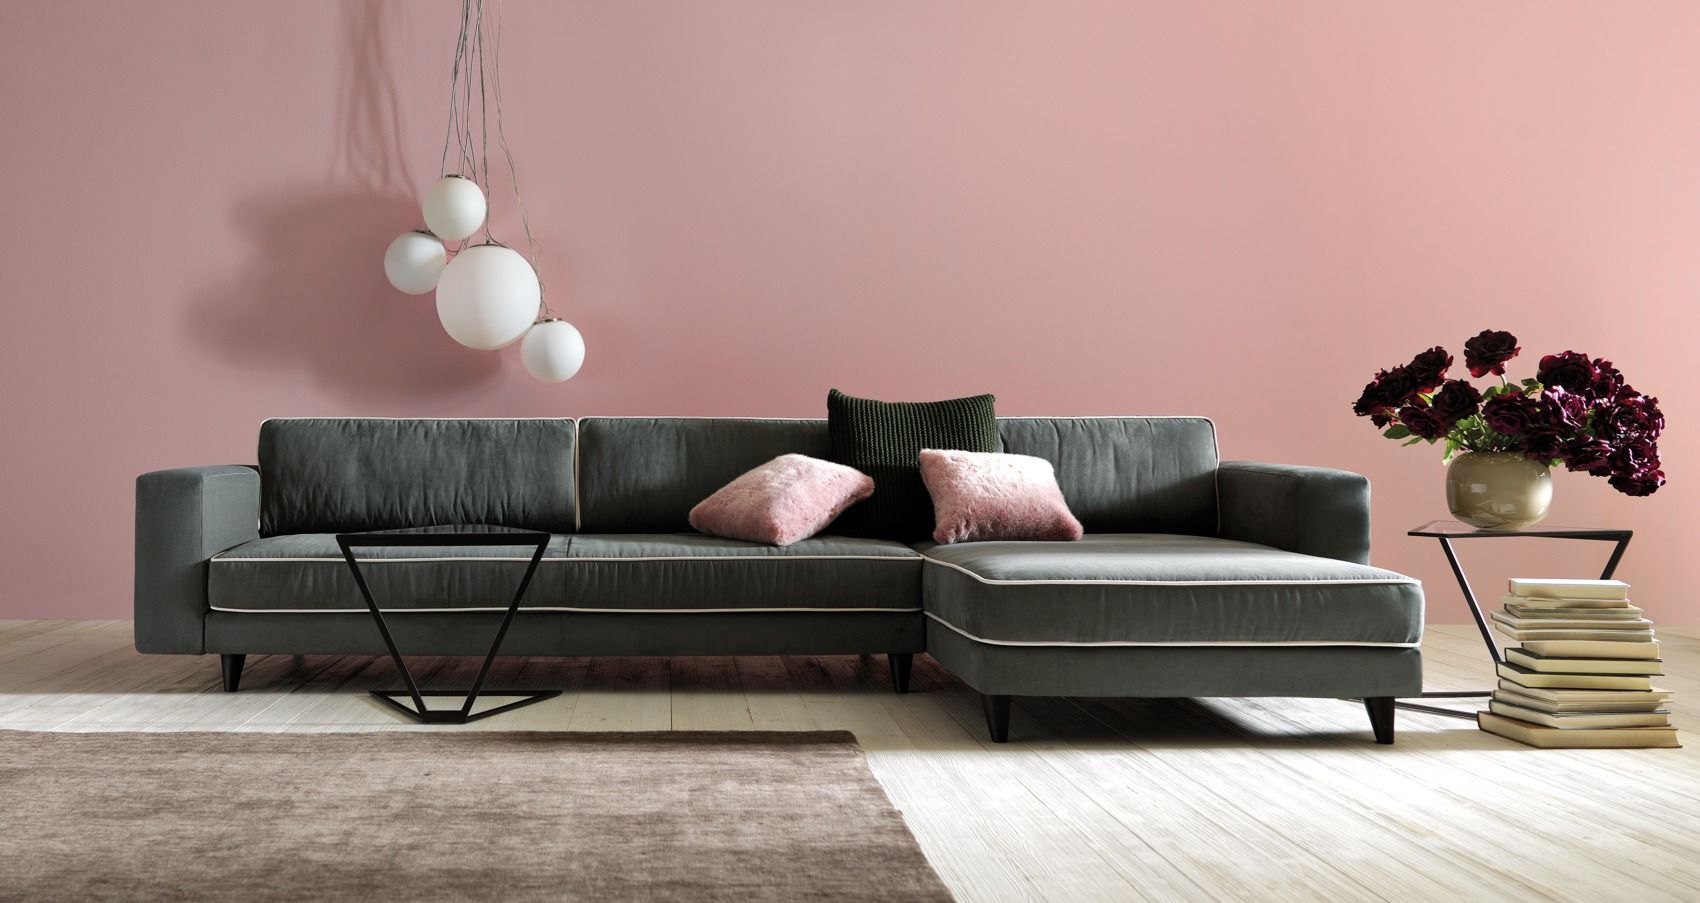 Divano Rosa ~ Best divano images canapes couches and settees